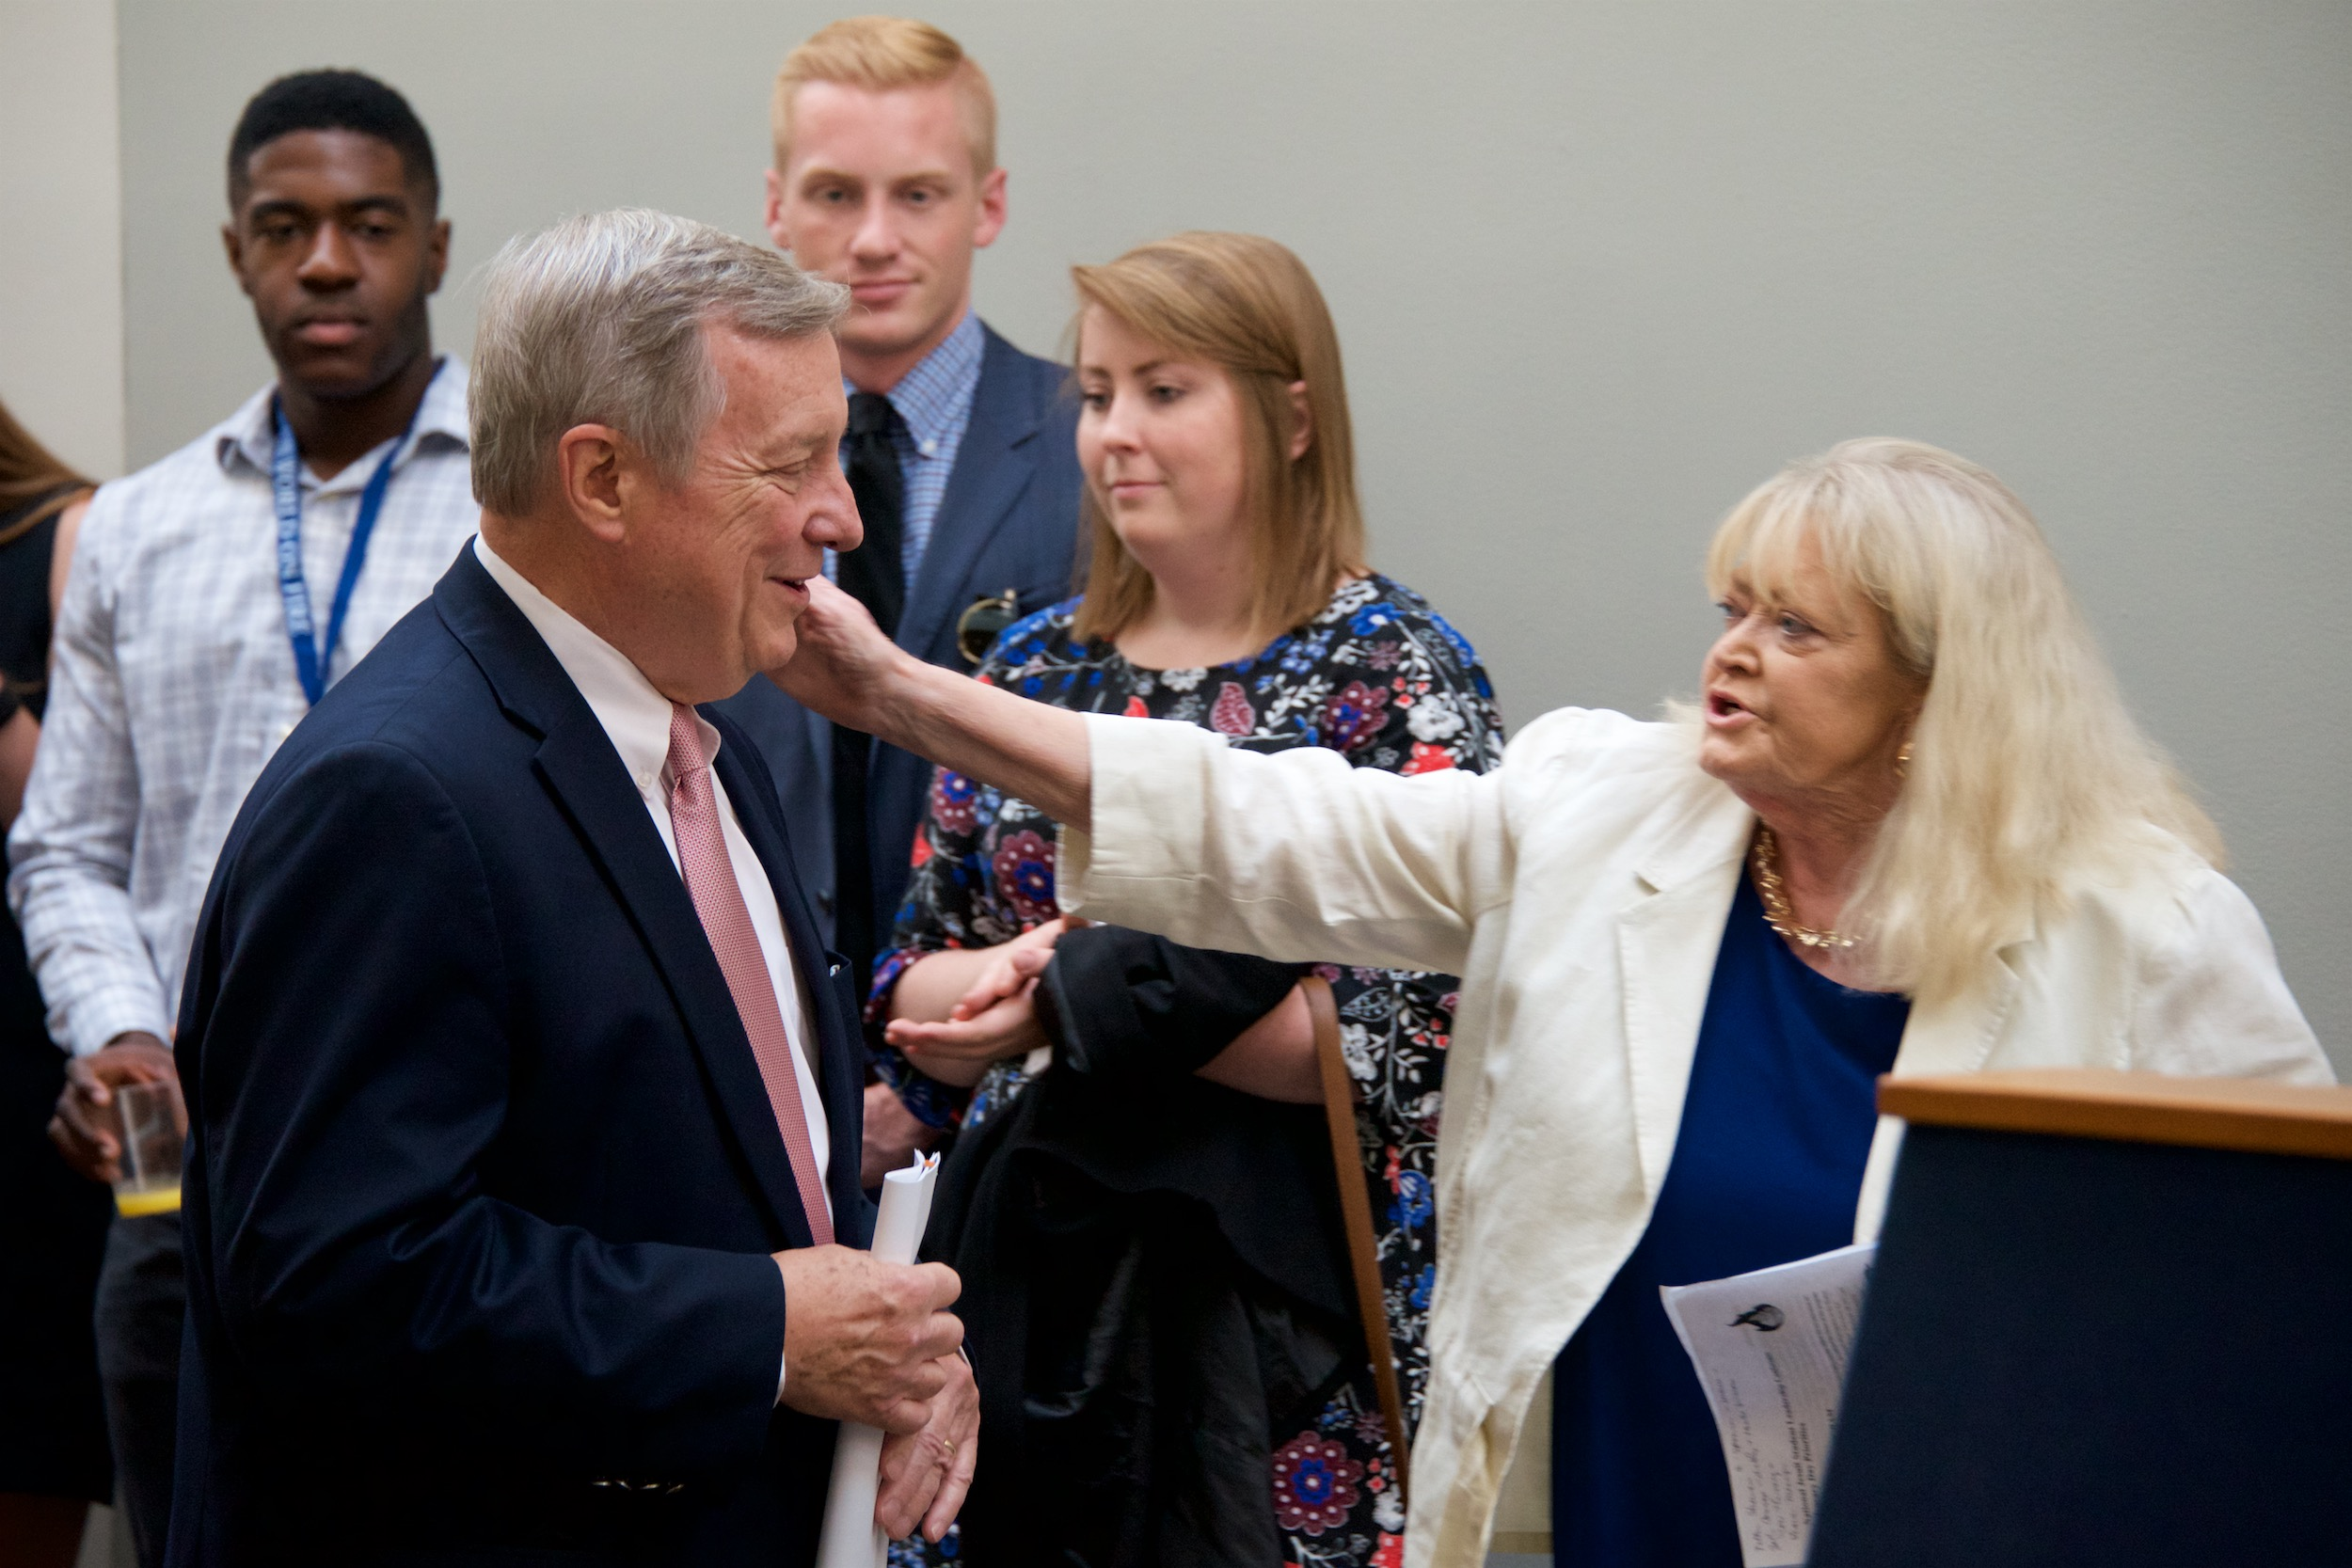 AJCU's Vice President for Relations, Cyndy Littlefield with Senator Richard Durbin (D-IL) (photo by Rafael Suanes)